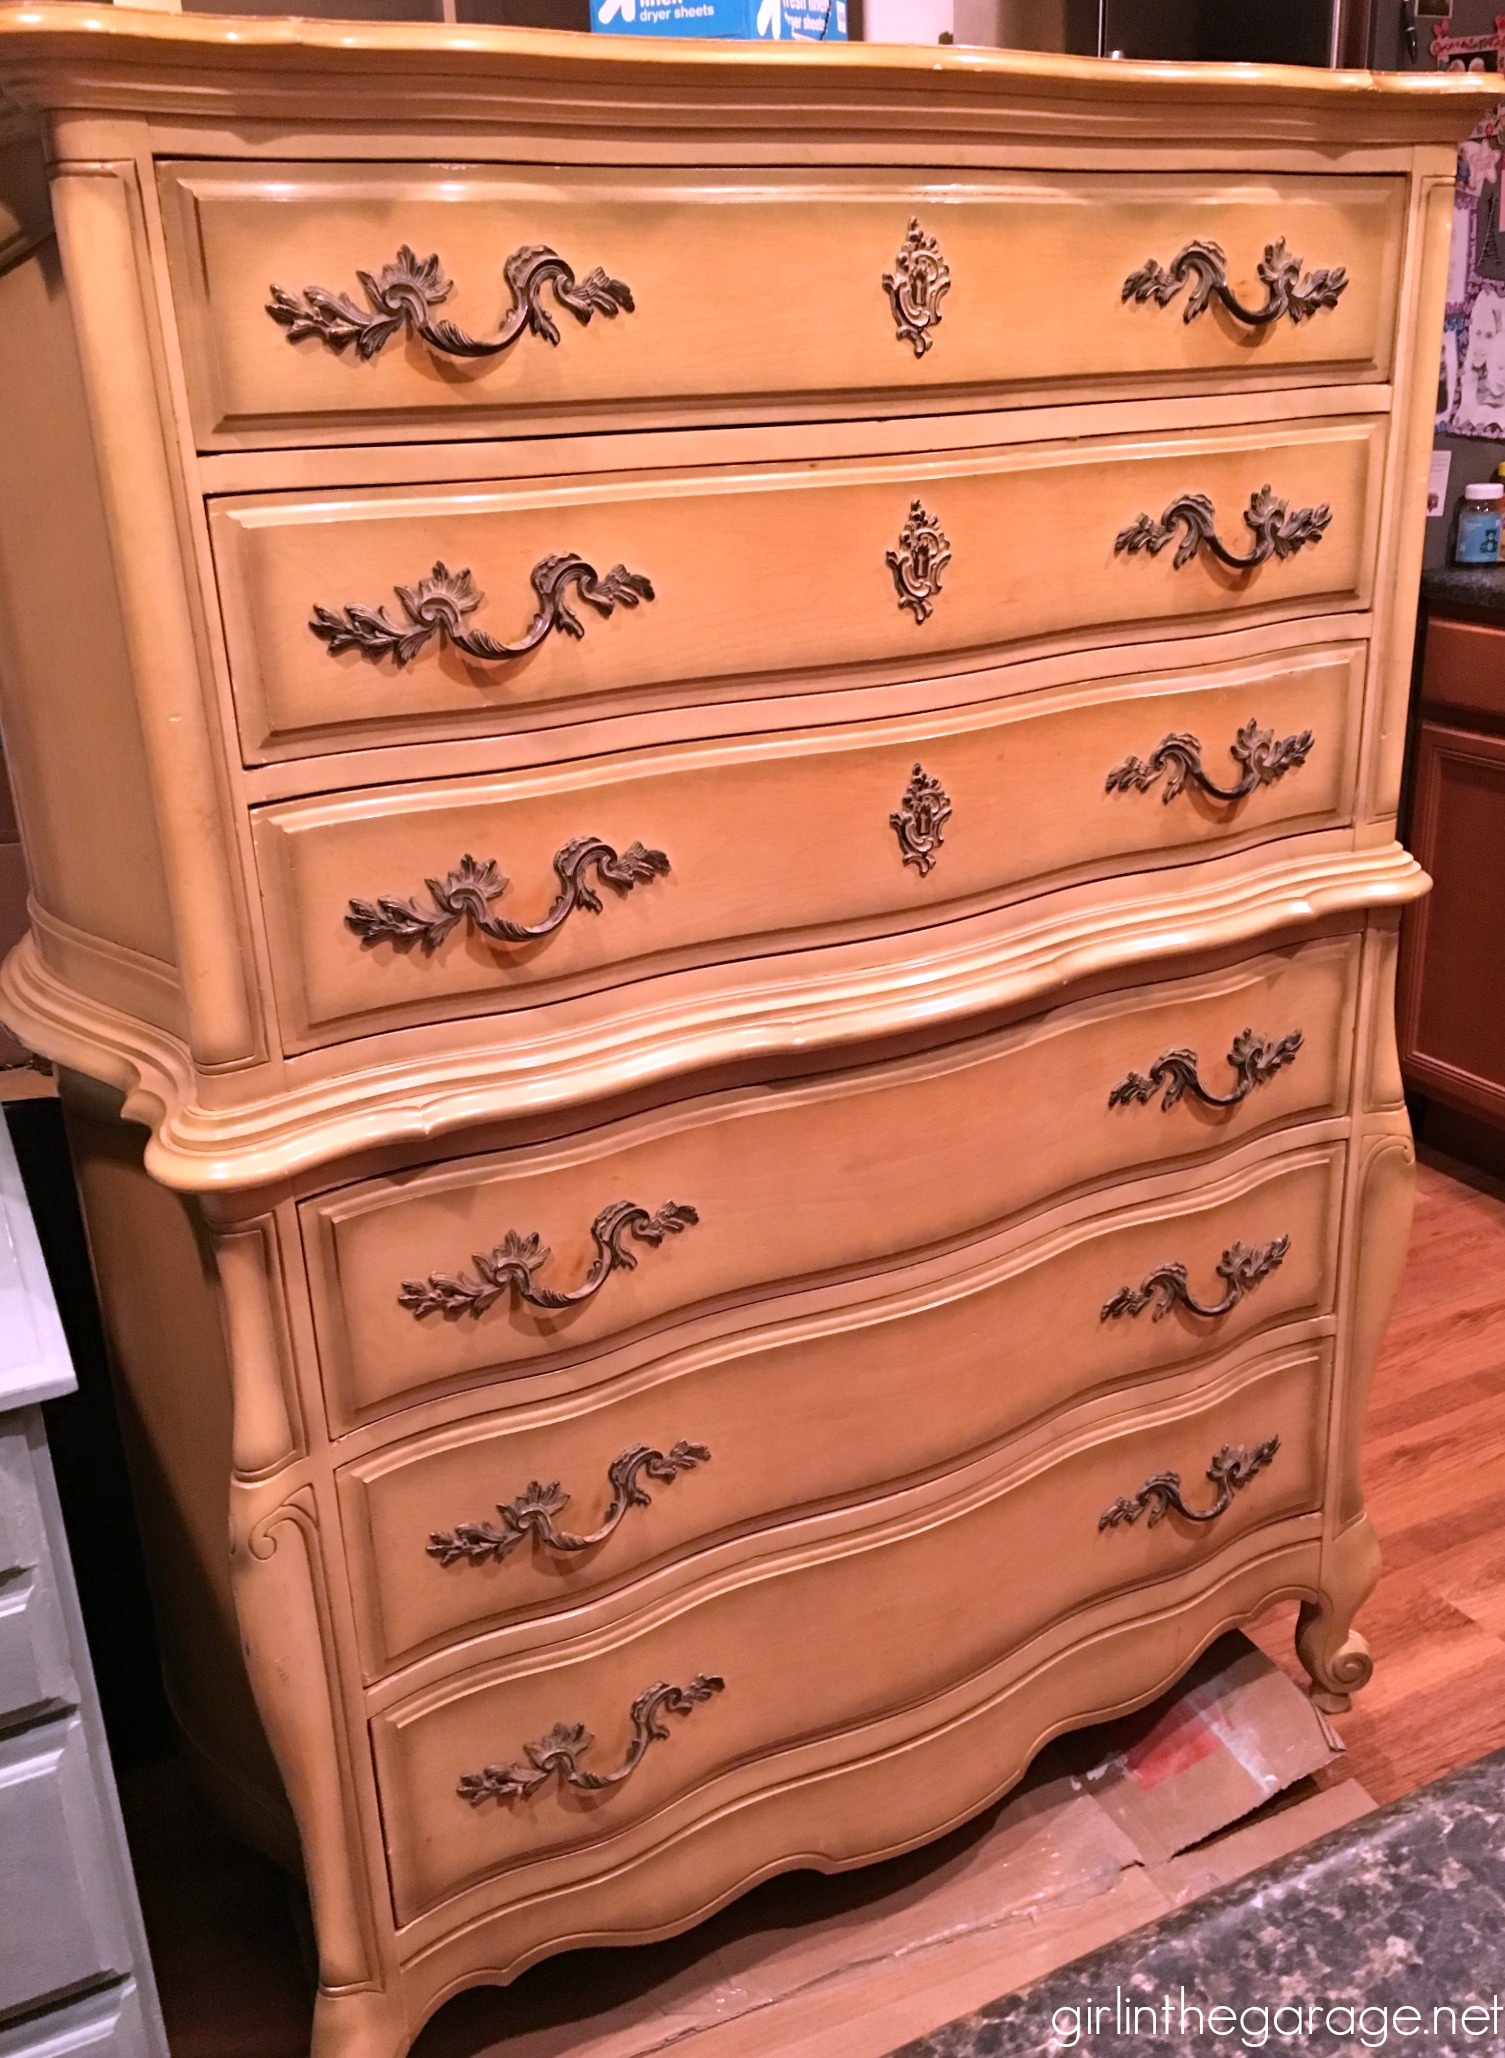 Calm French Provincial Dresser Beast To Beauty Girl French Provincial Dresser Etsy French Provincial Dresser Chalk Paint Fusion Mineral Bygirl Glamorous French Provincial Dresser Makeover houzz-02 French Provincial Dresser